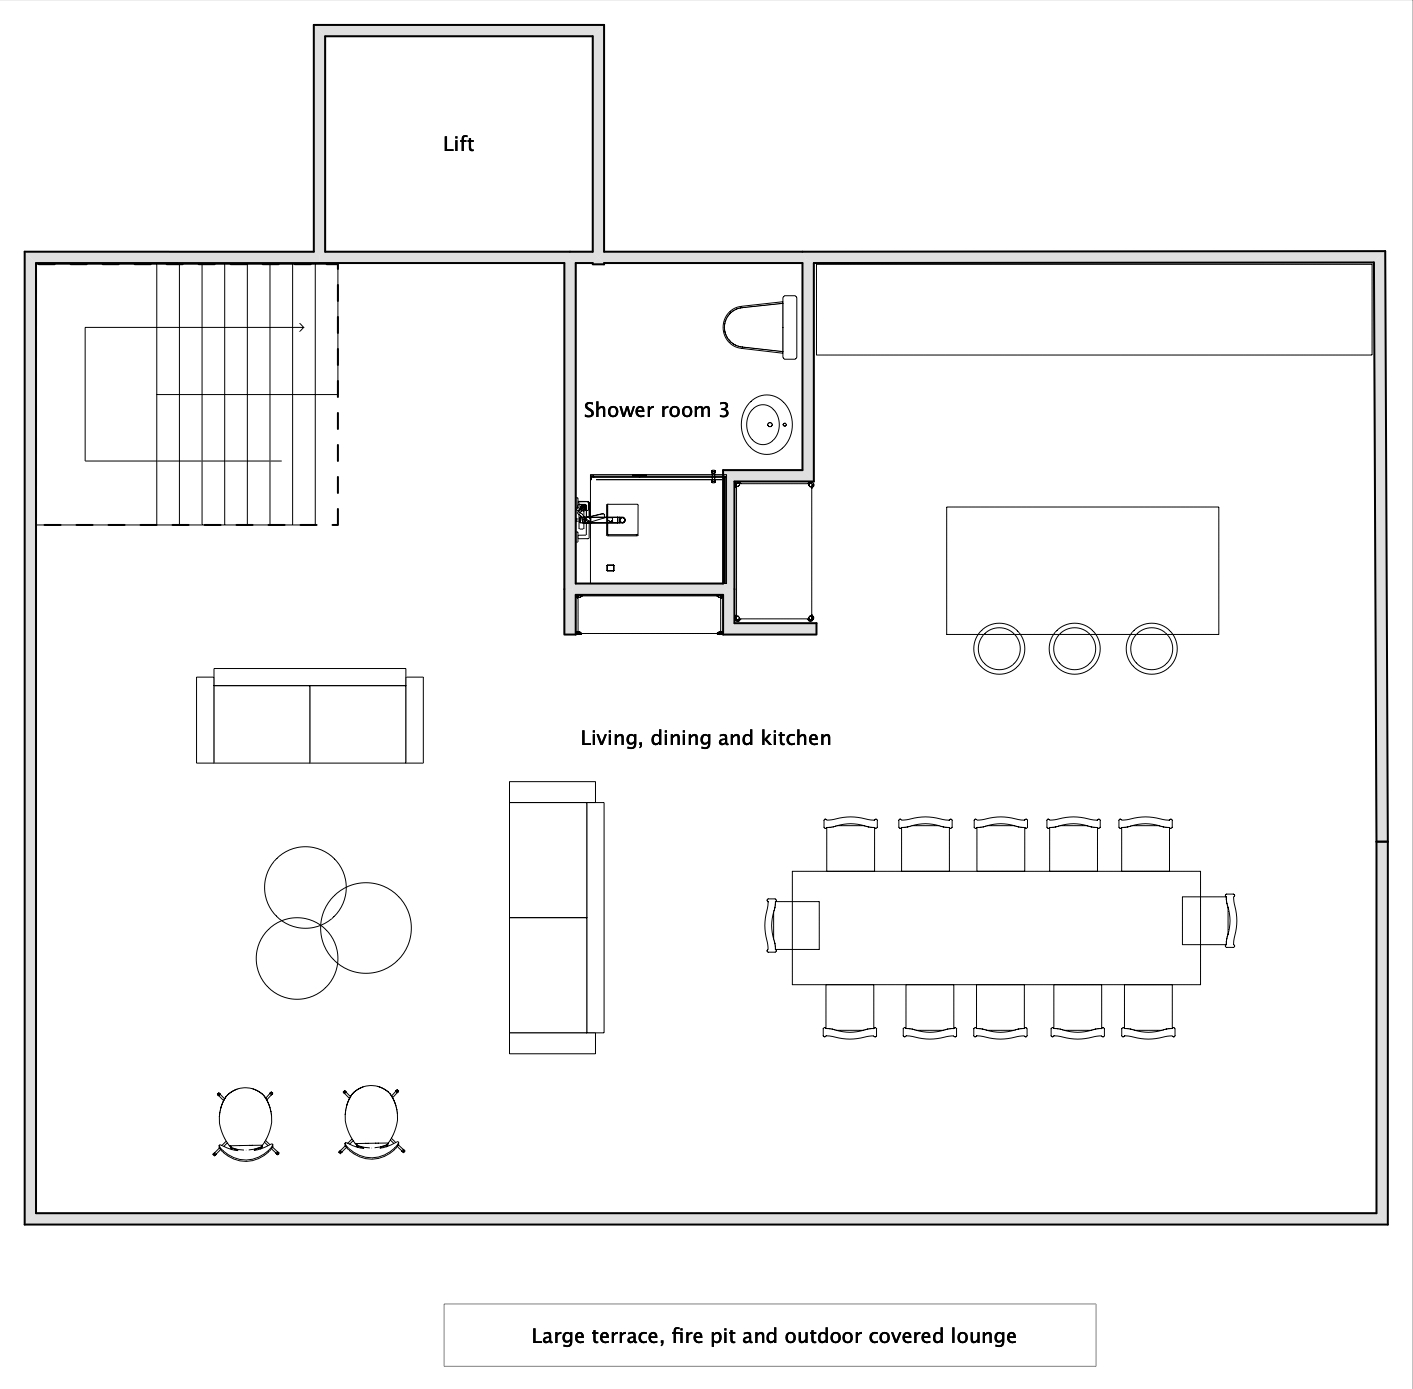 Chalet V (Self-Catered) Verbier Floor Plan 4